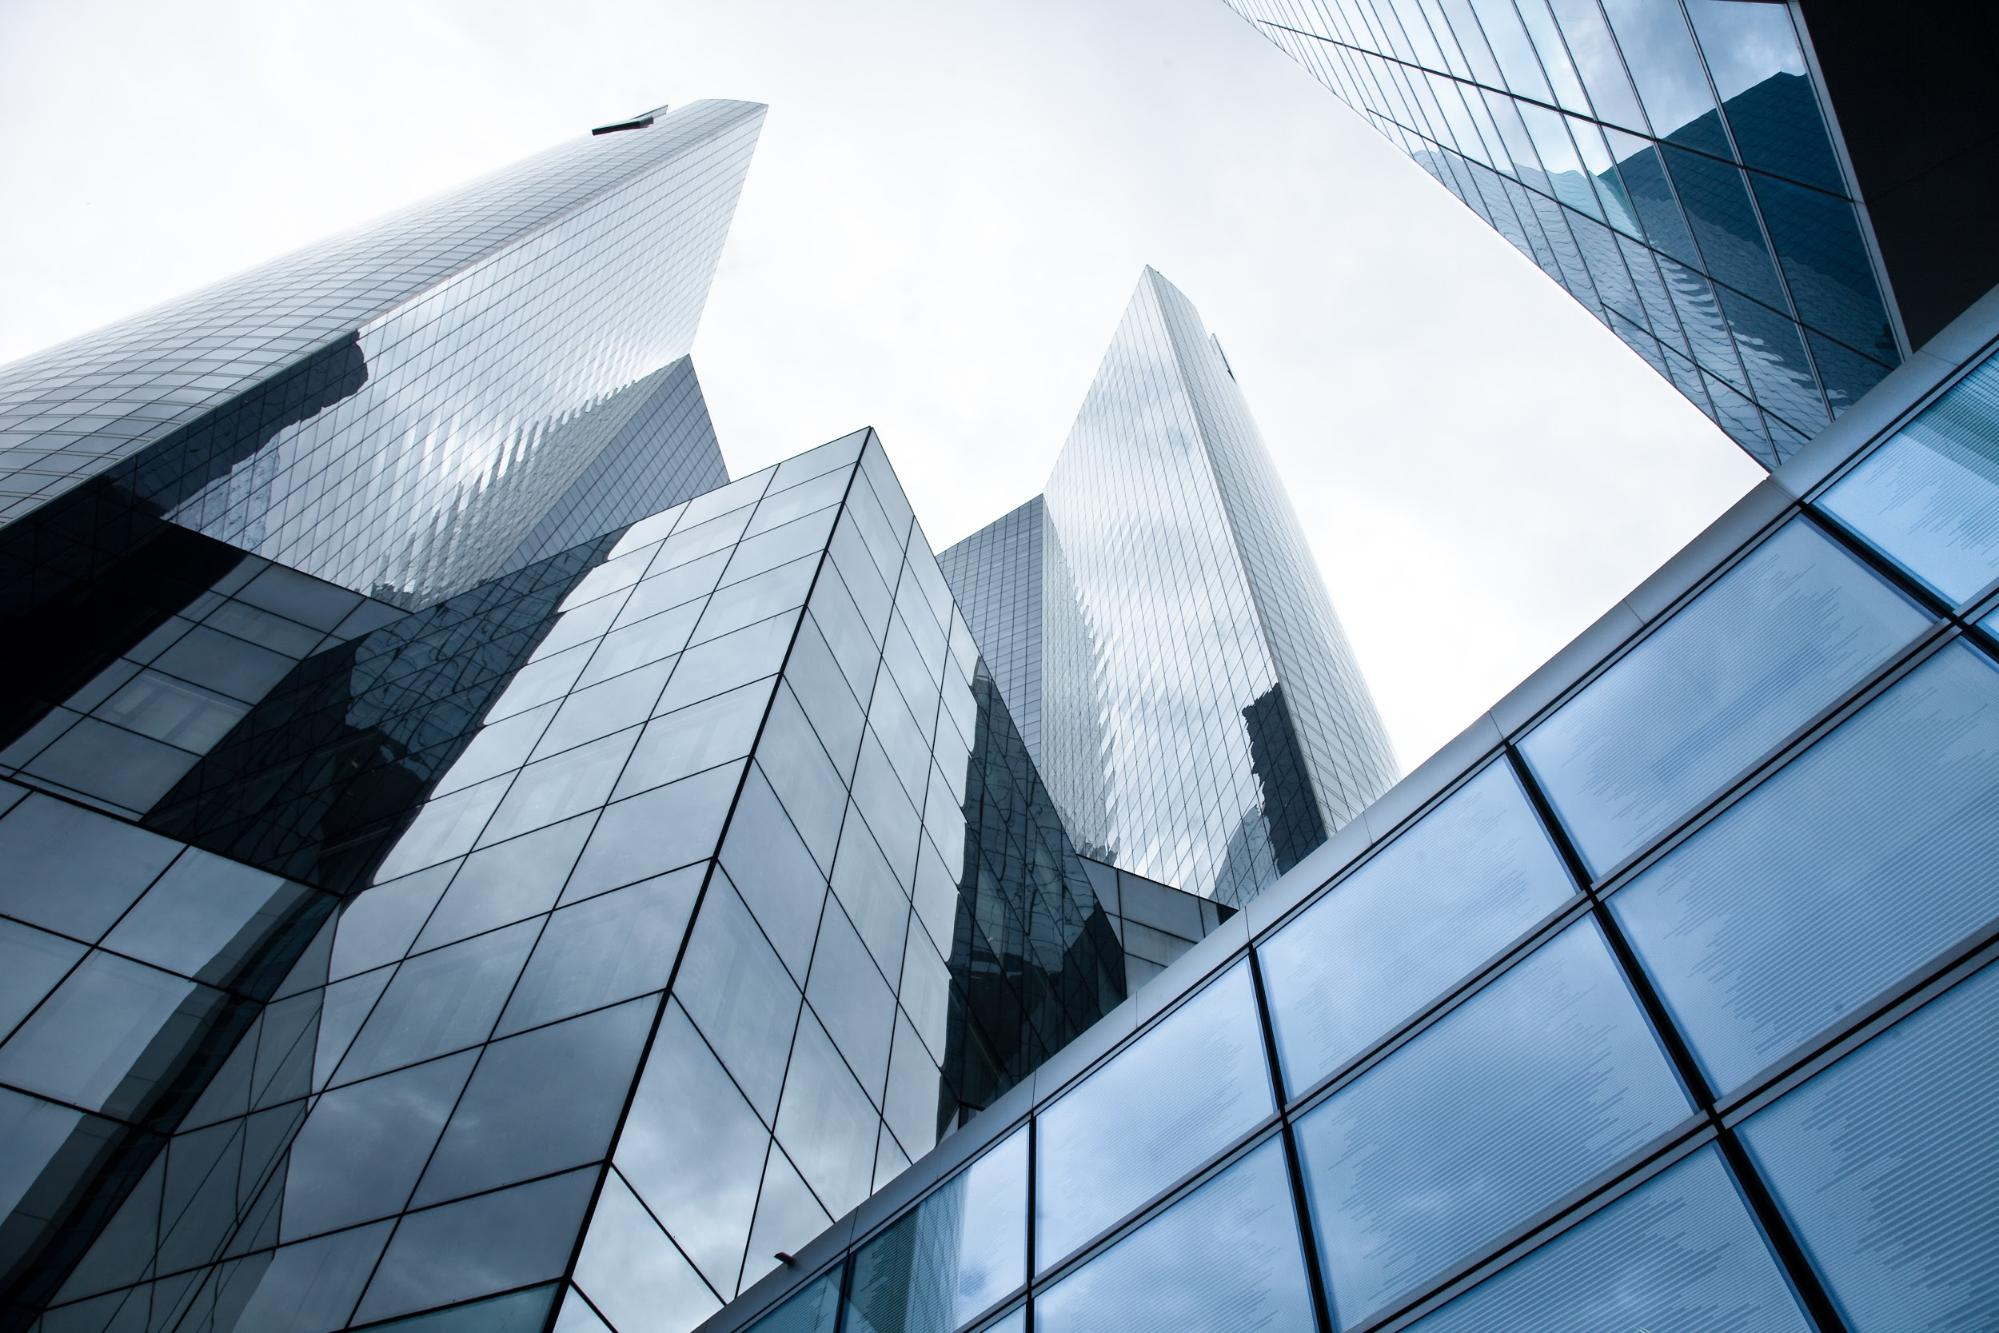 Skyscrapers with glass panels